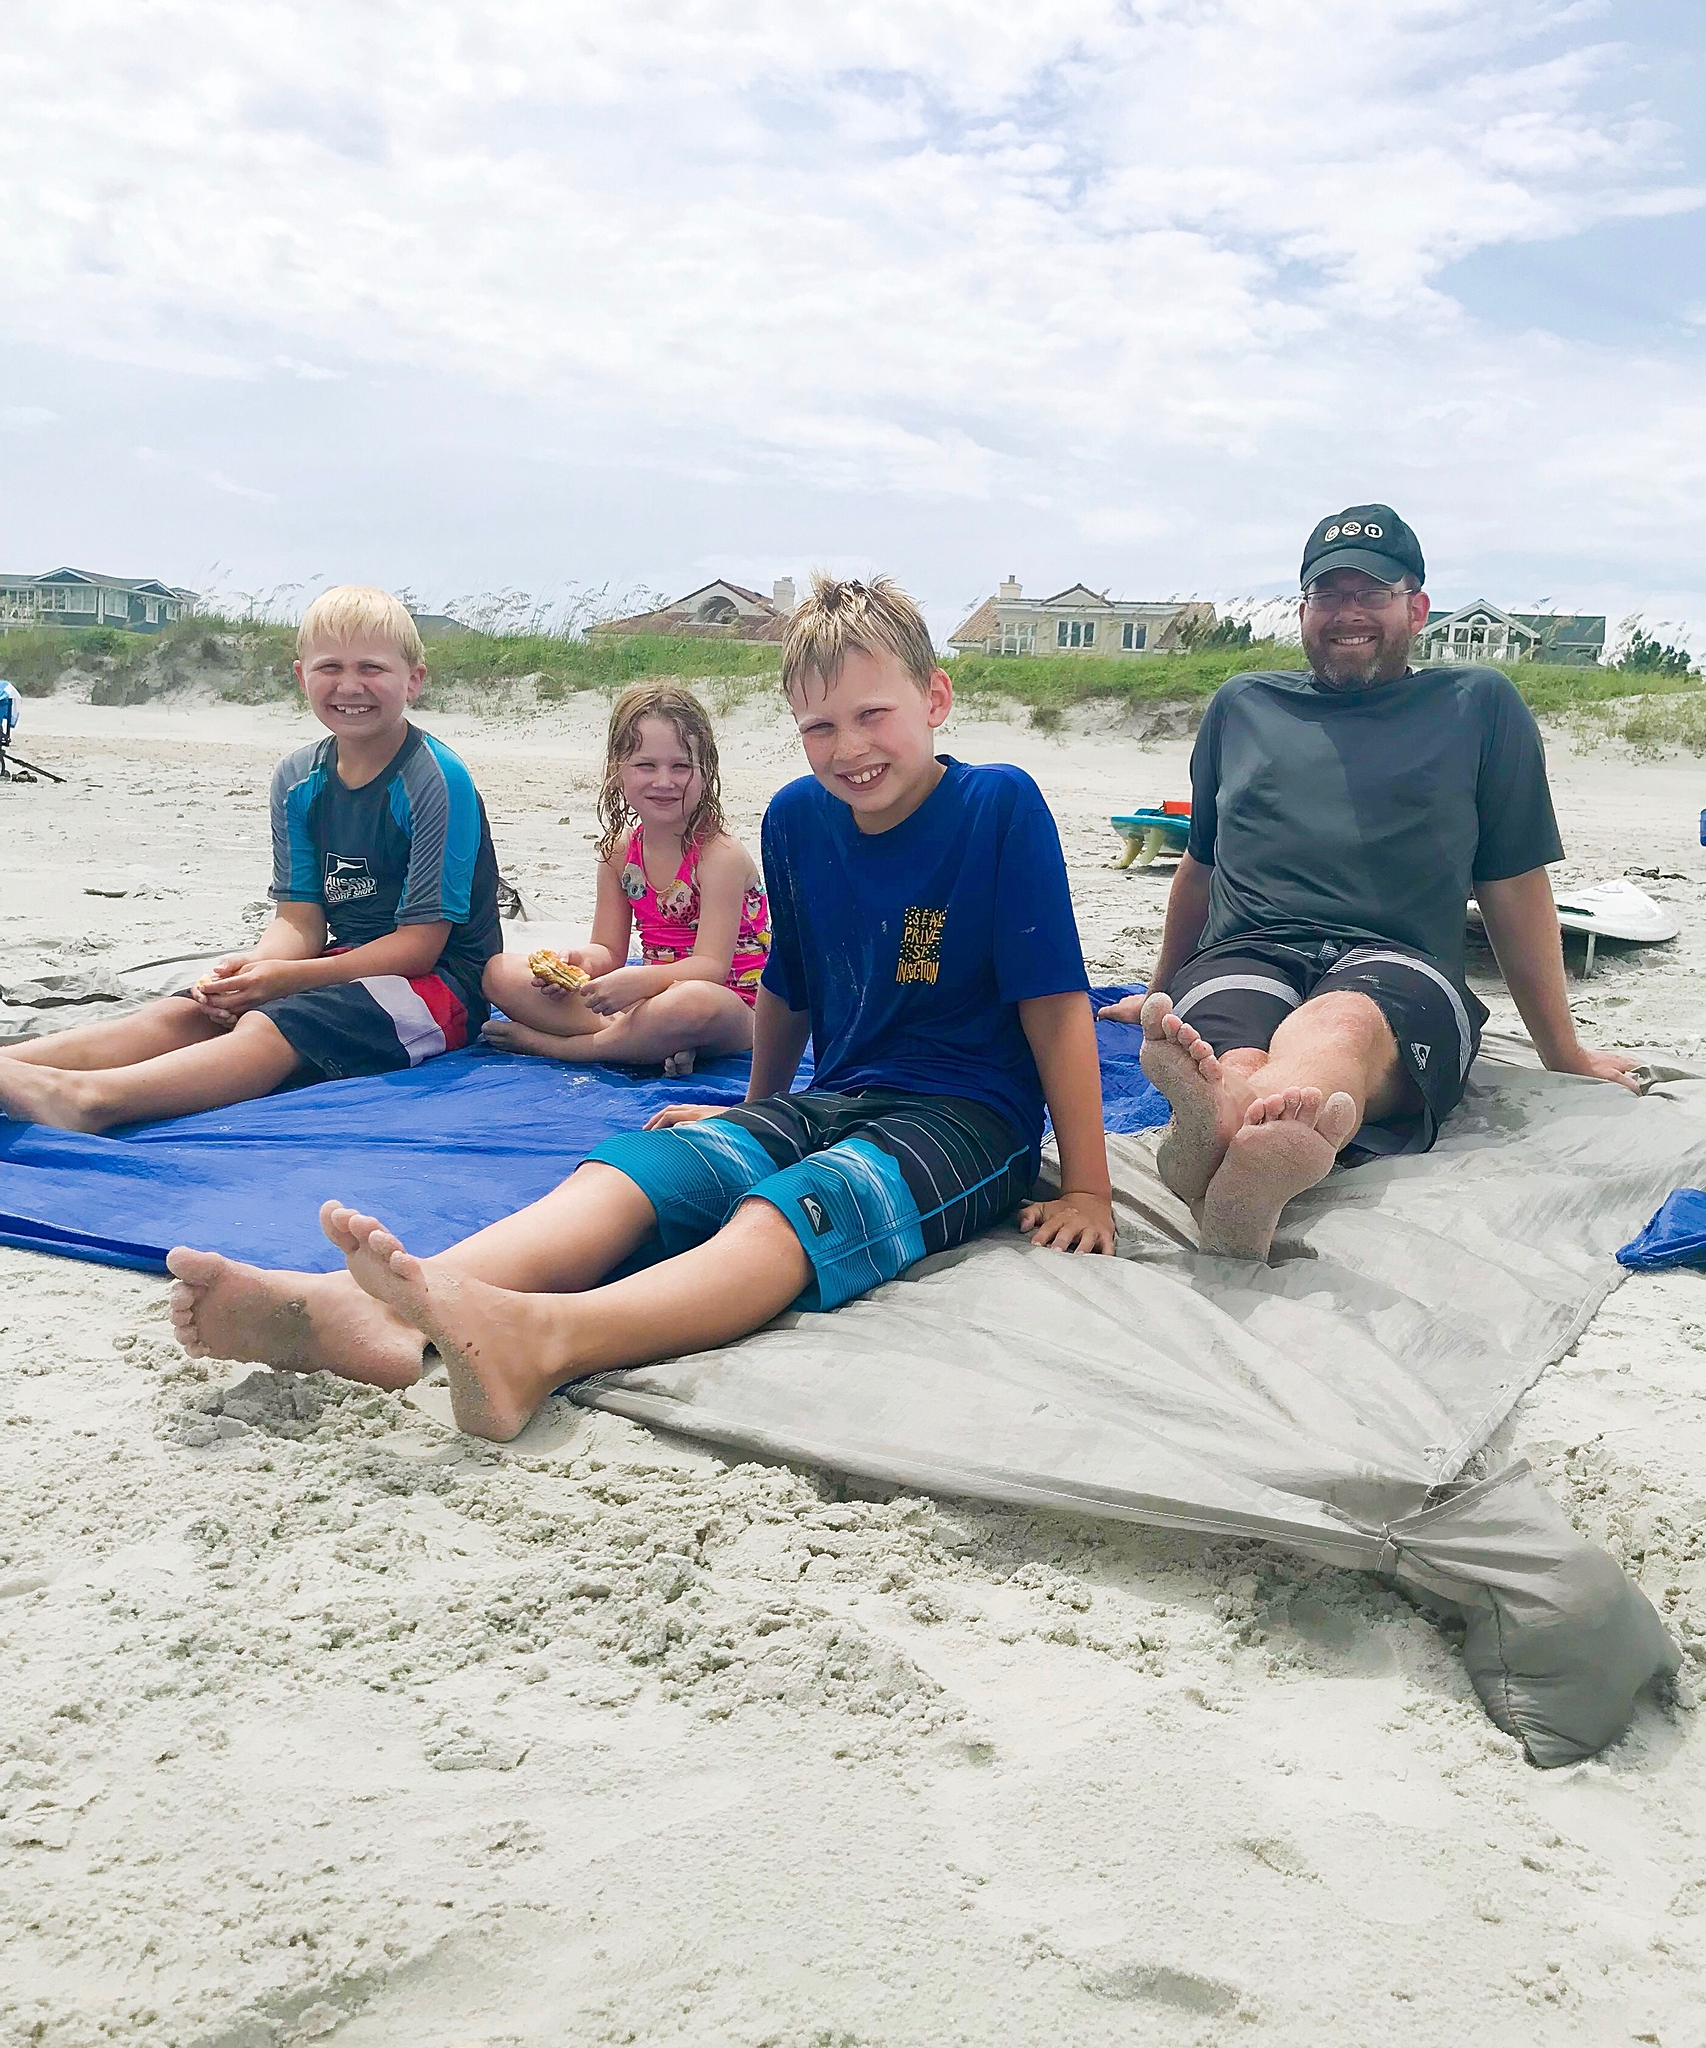 What to Pack for a Family Beach Vacation - Beach Blanket